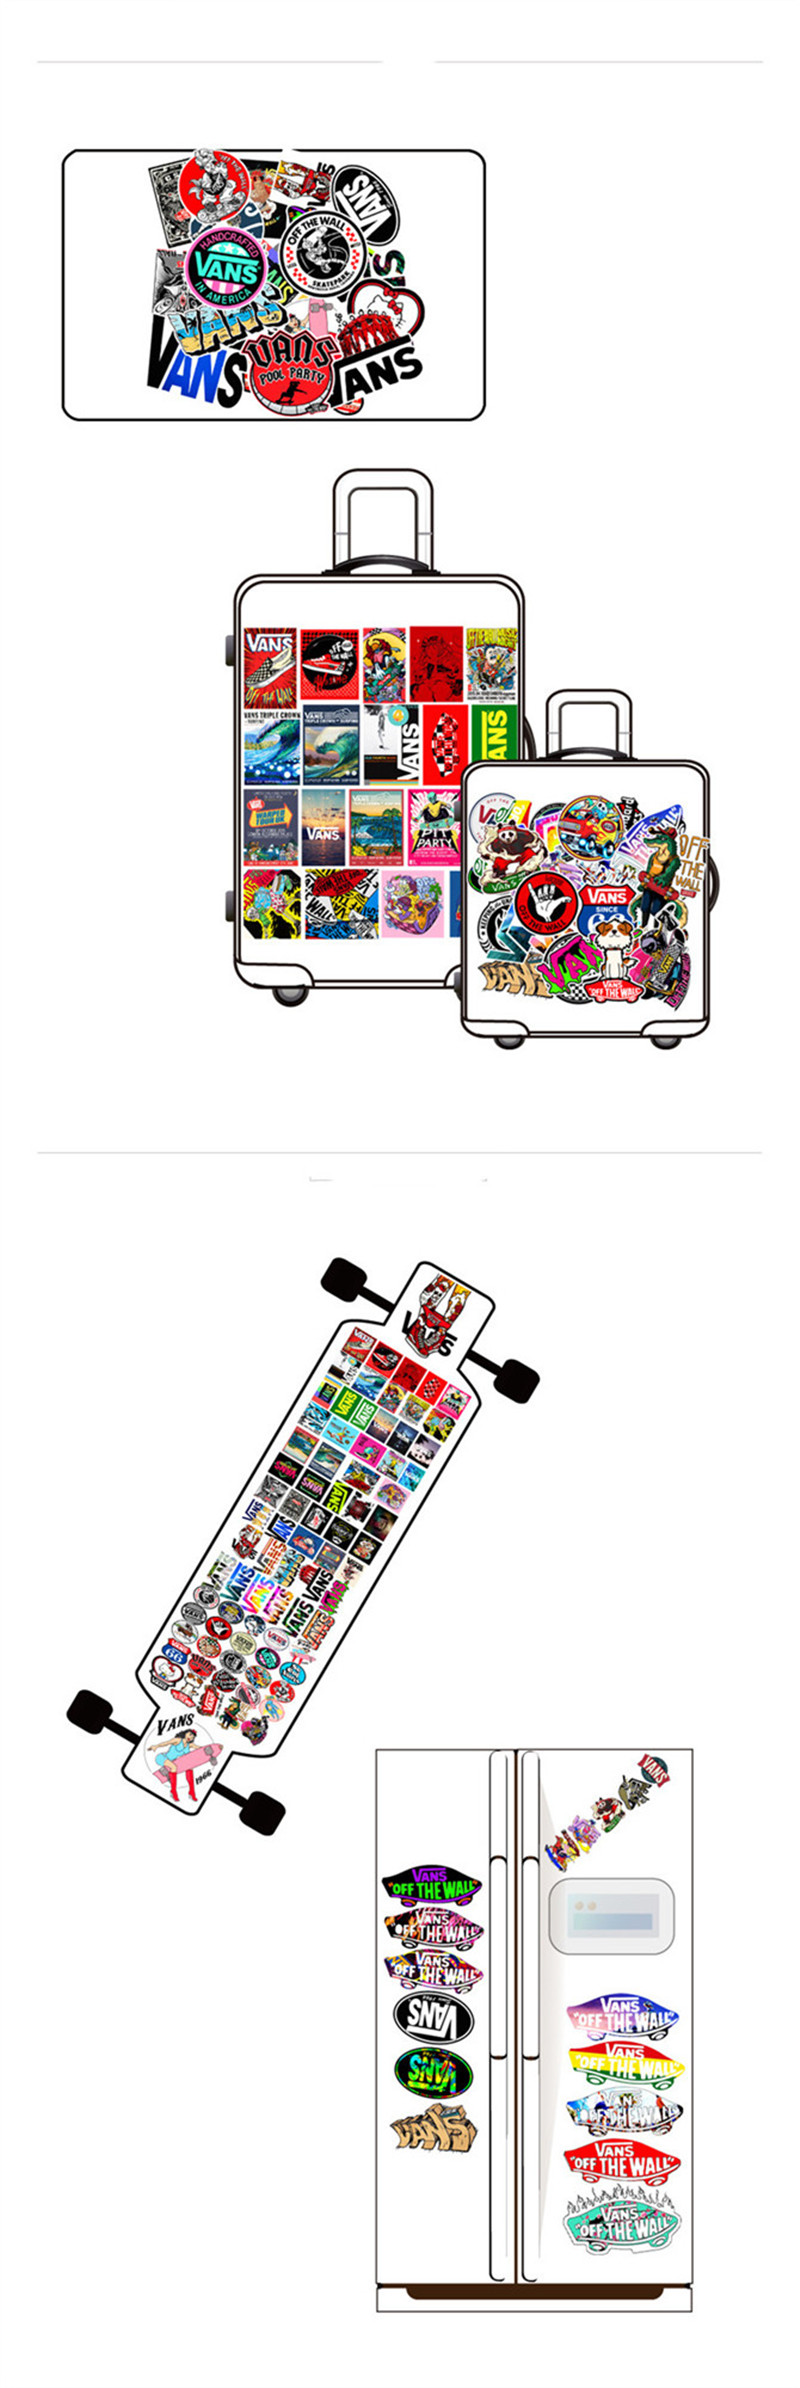 100 Pcslot Fashion Logo Vans Off The Wall PVC Stickers Kids Toys Decor for Car Laptop Pad Phone Trunk Guitar Bicycle Motor